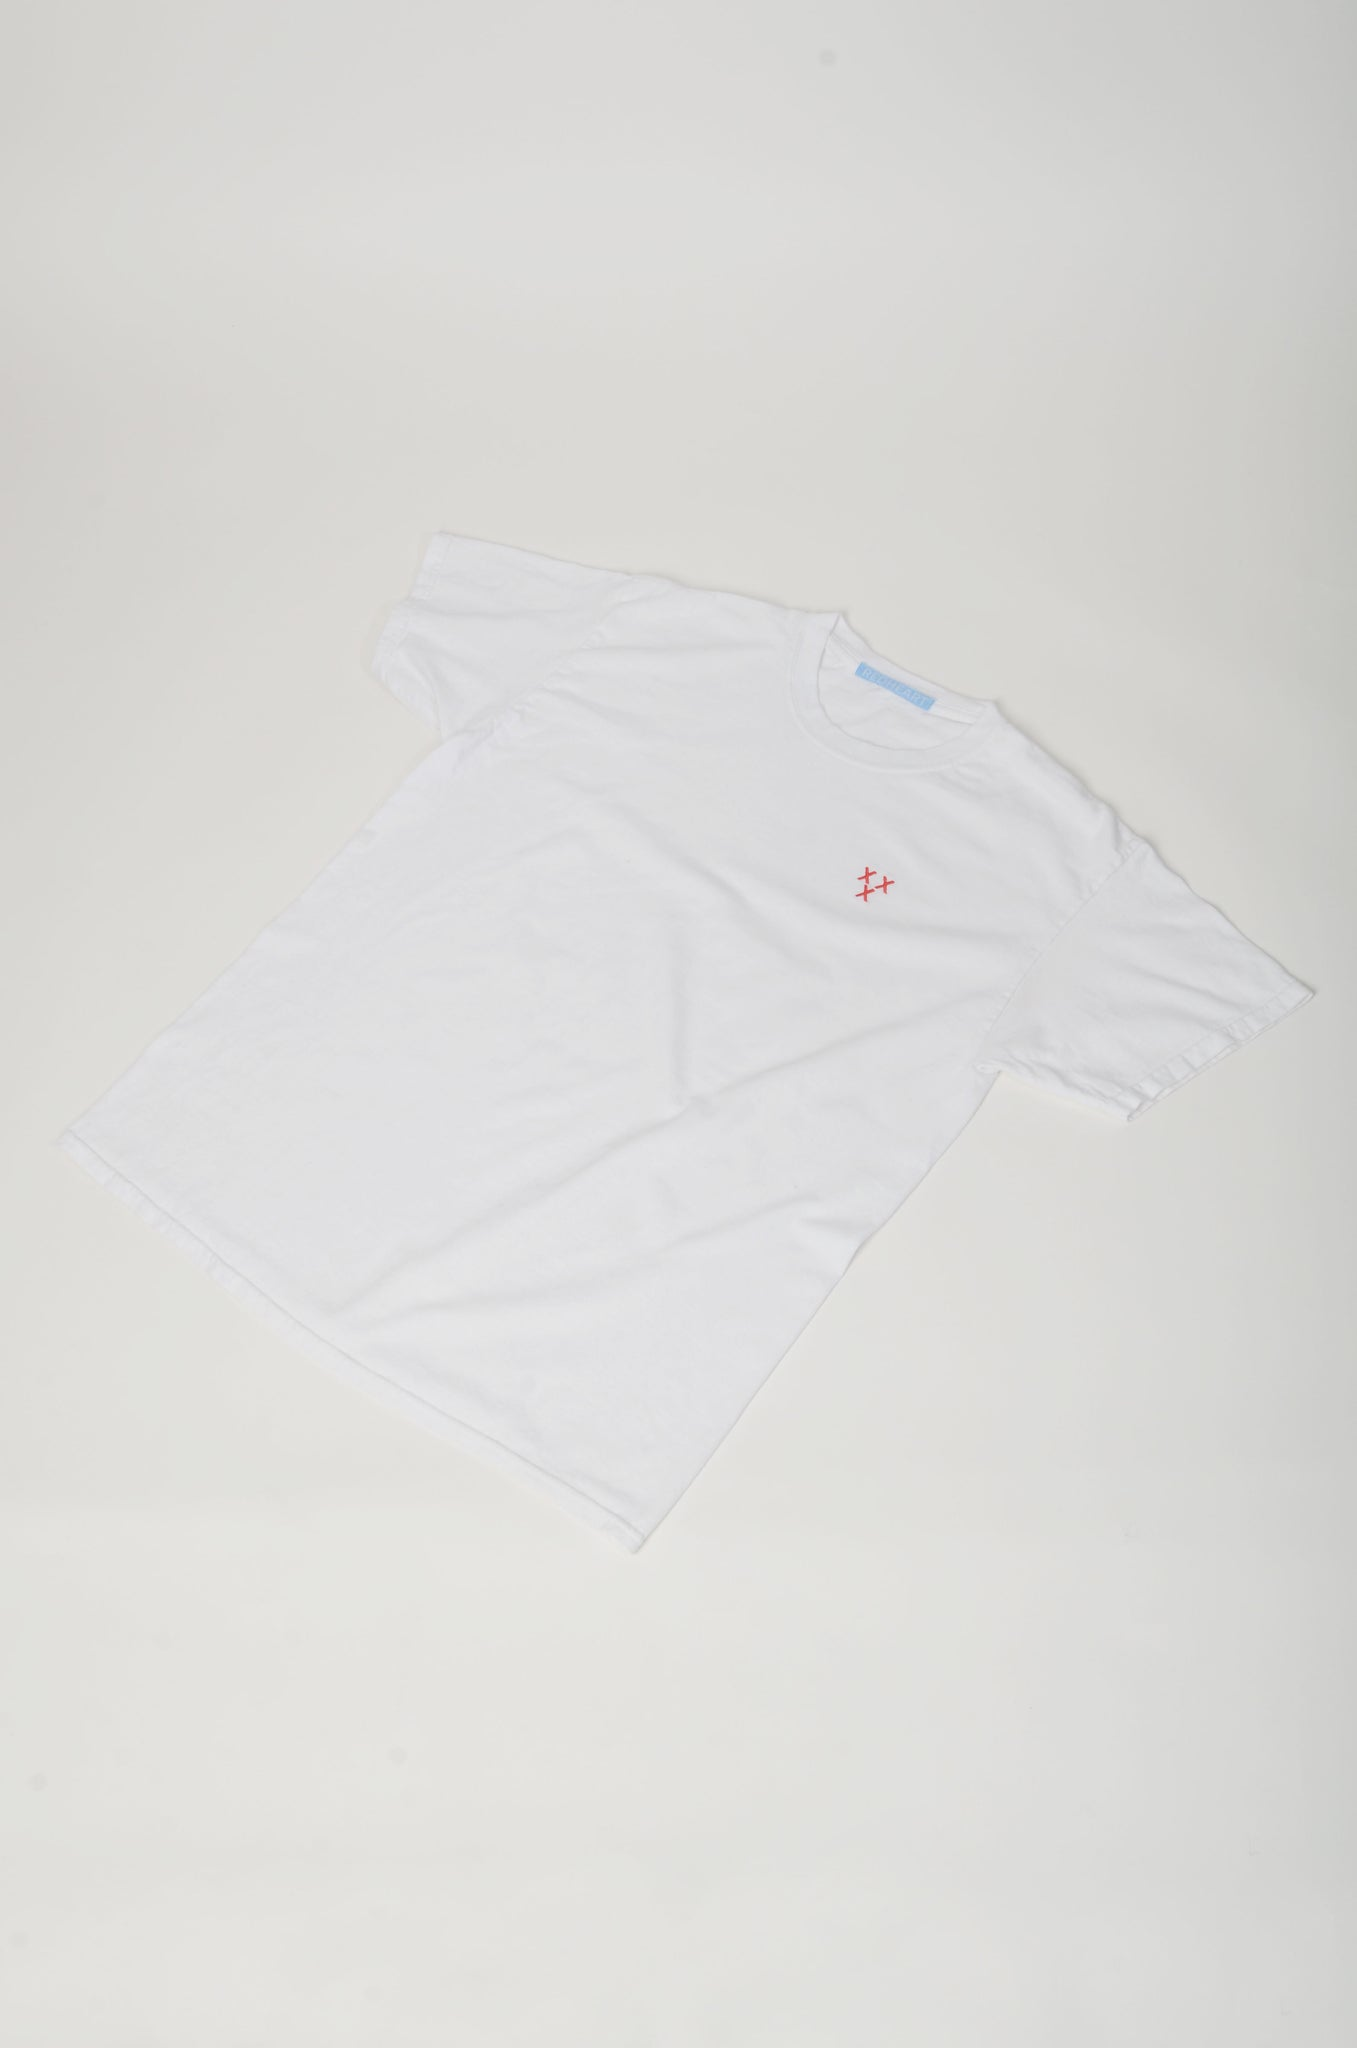 Embroidered Three Crosses T-Shirt (Breast)